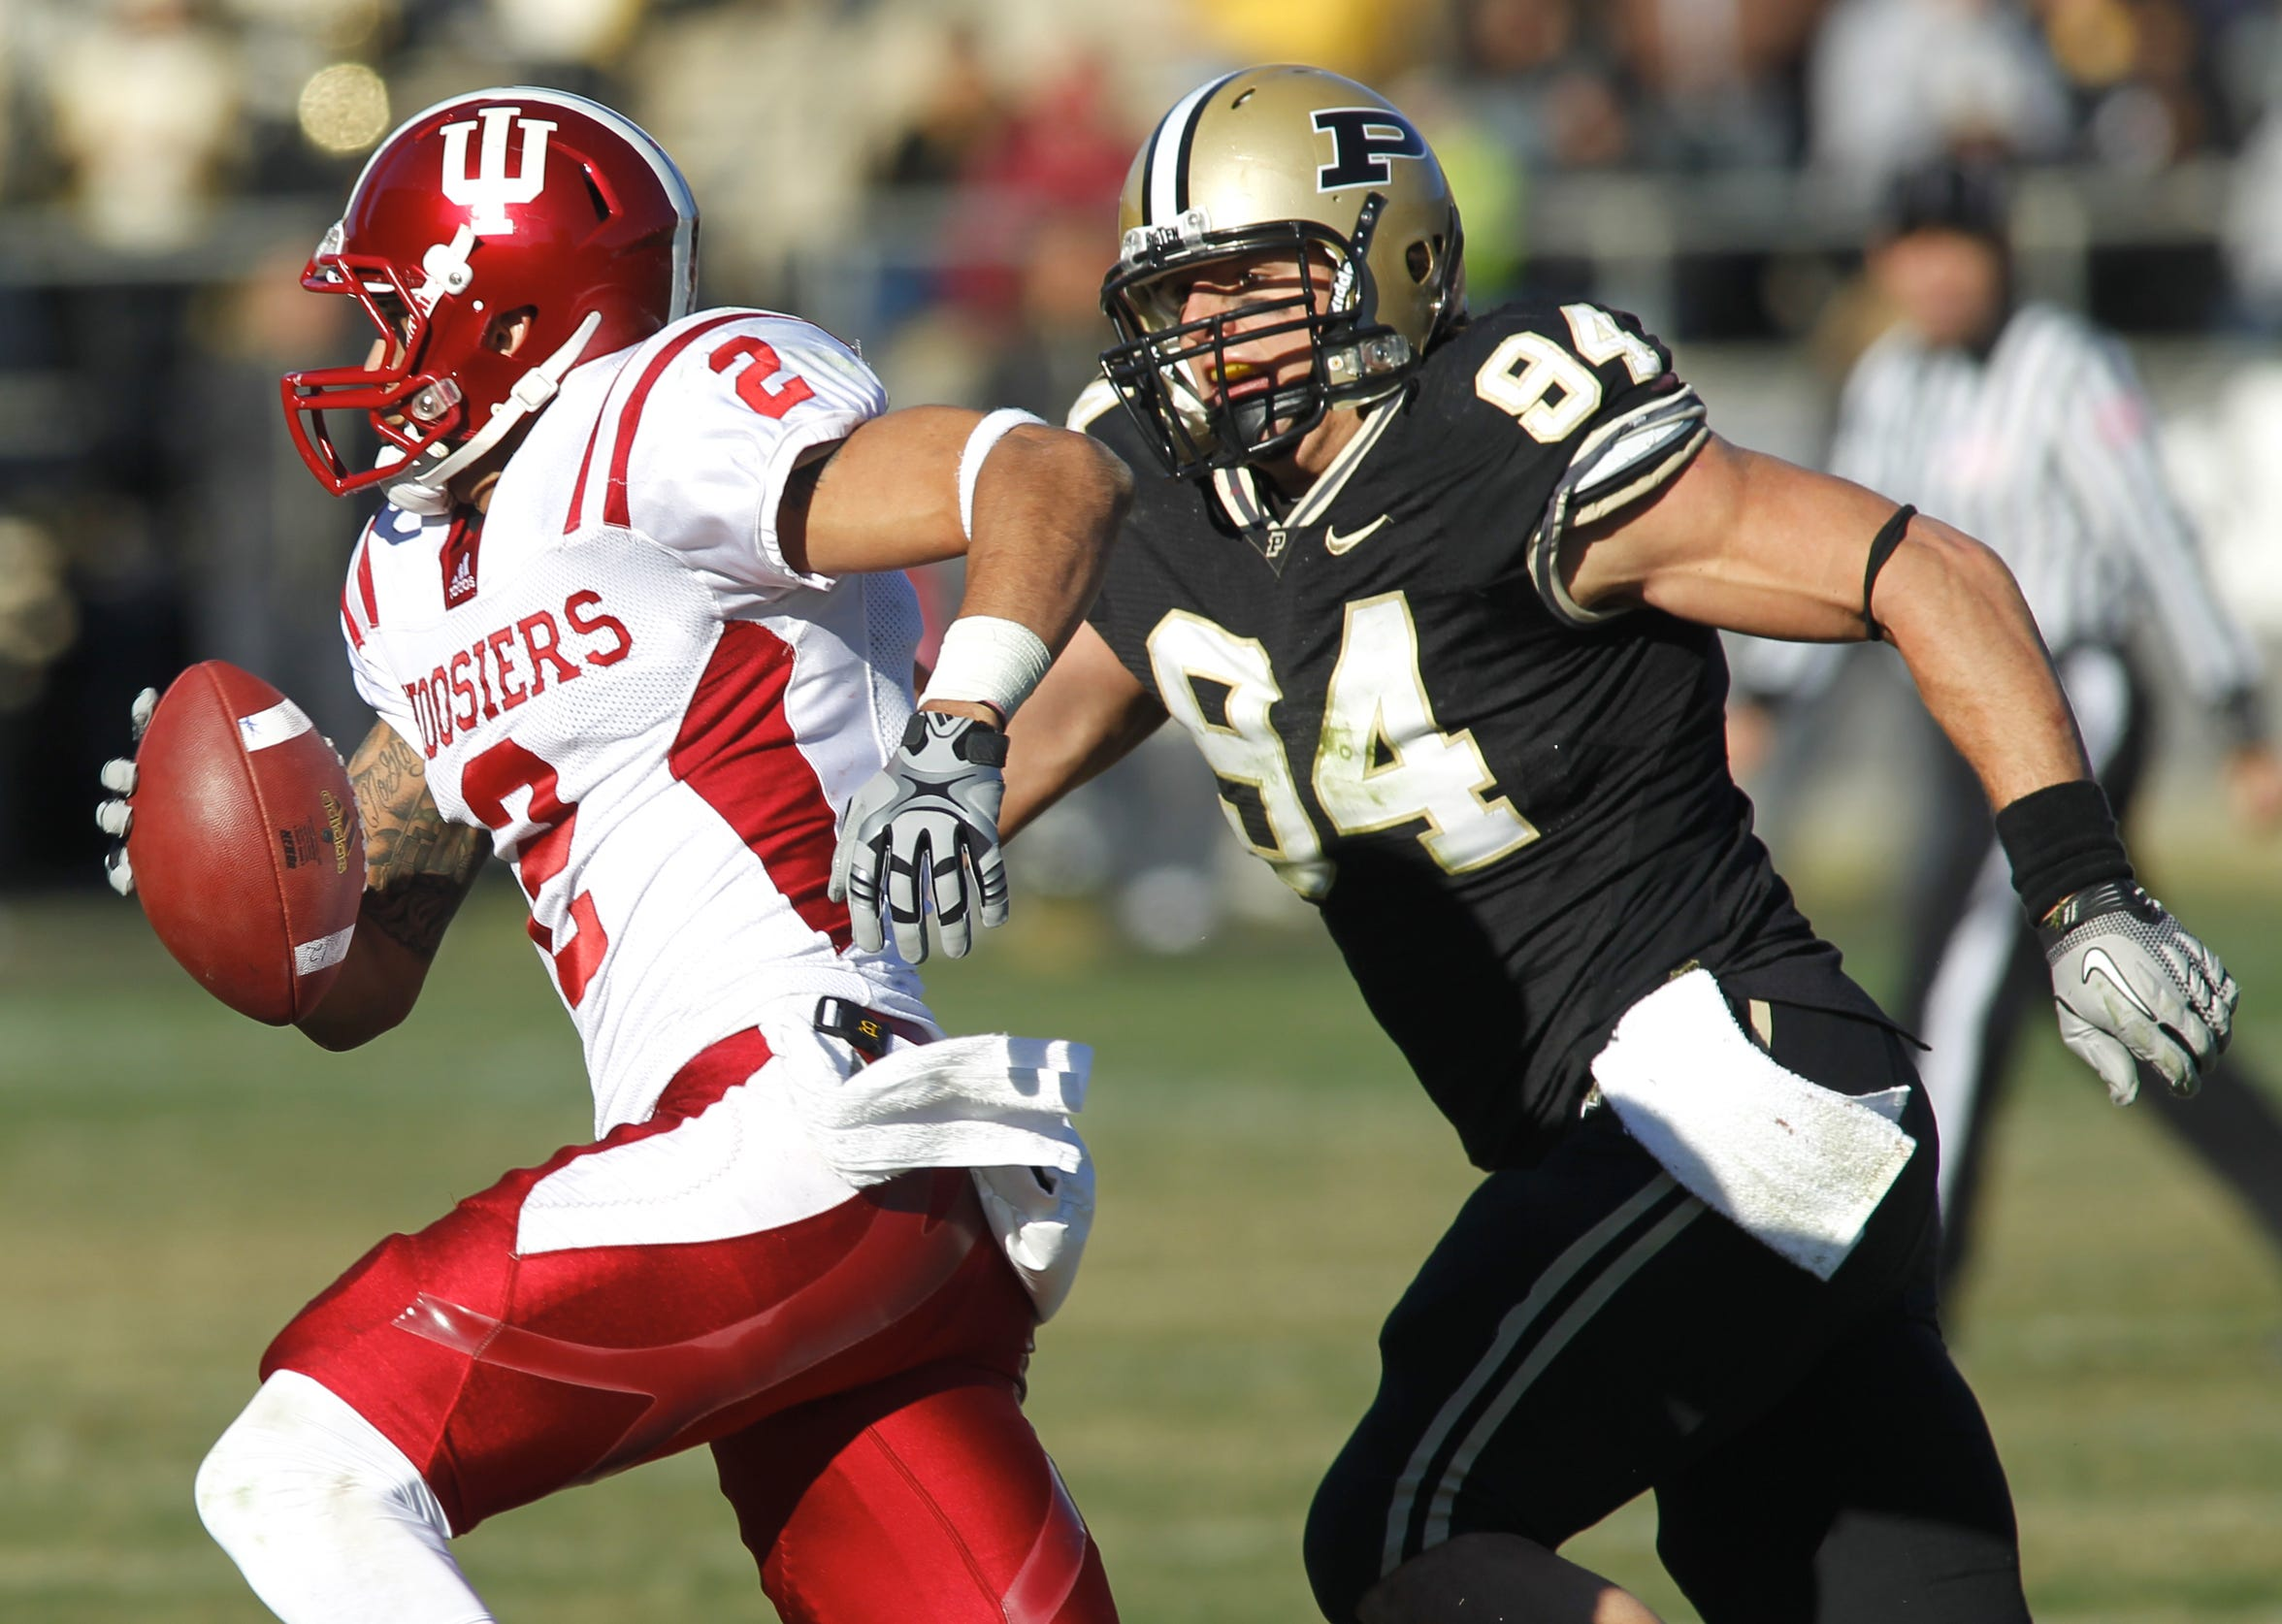 Purdue defensive end Ryan Kerrigan (94) earned All-America status with his penchant for forcing fumbles and collecting quarterback sacks.